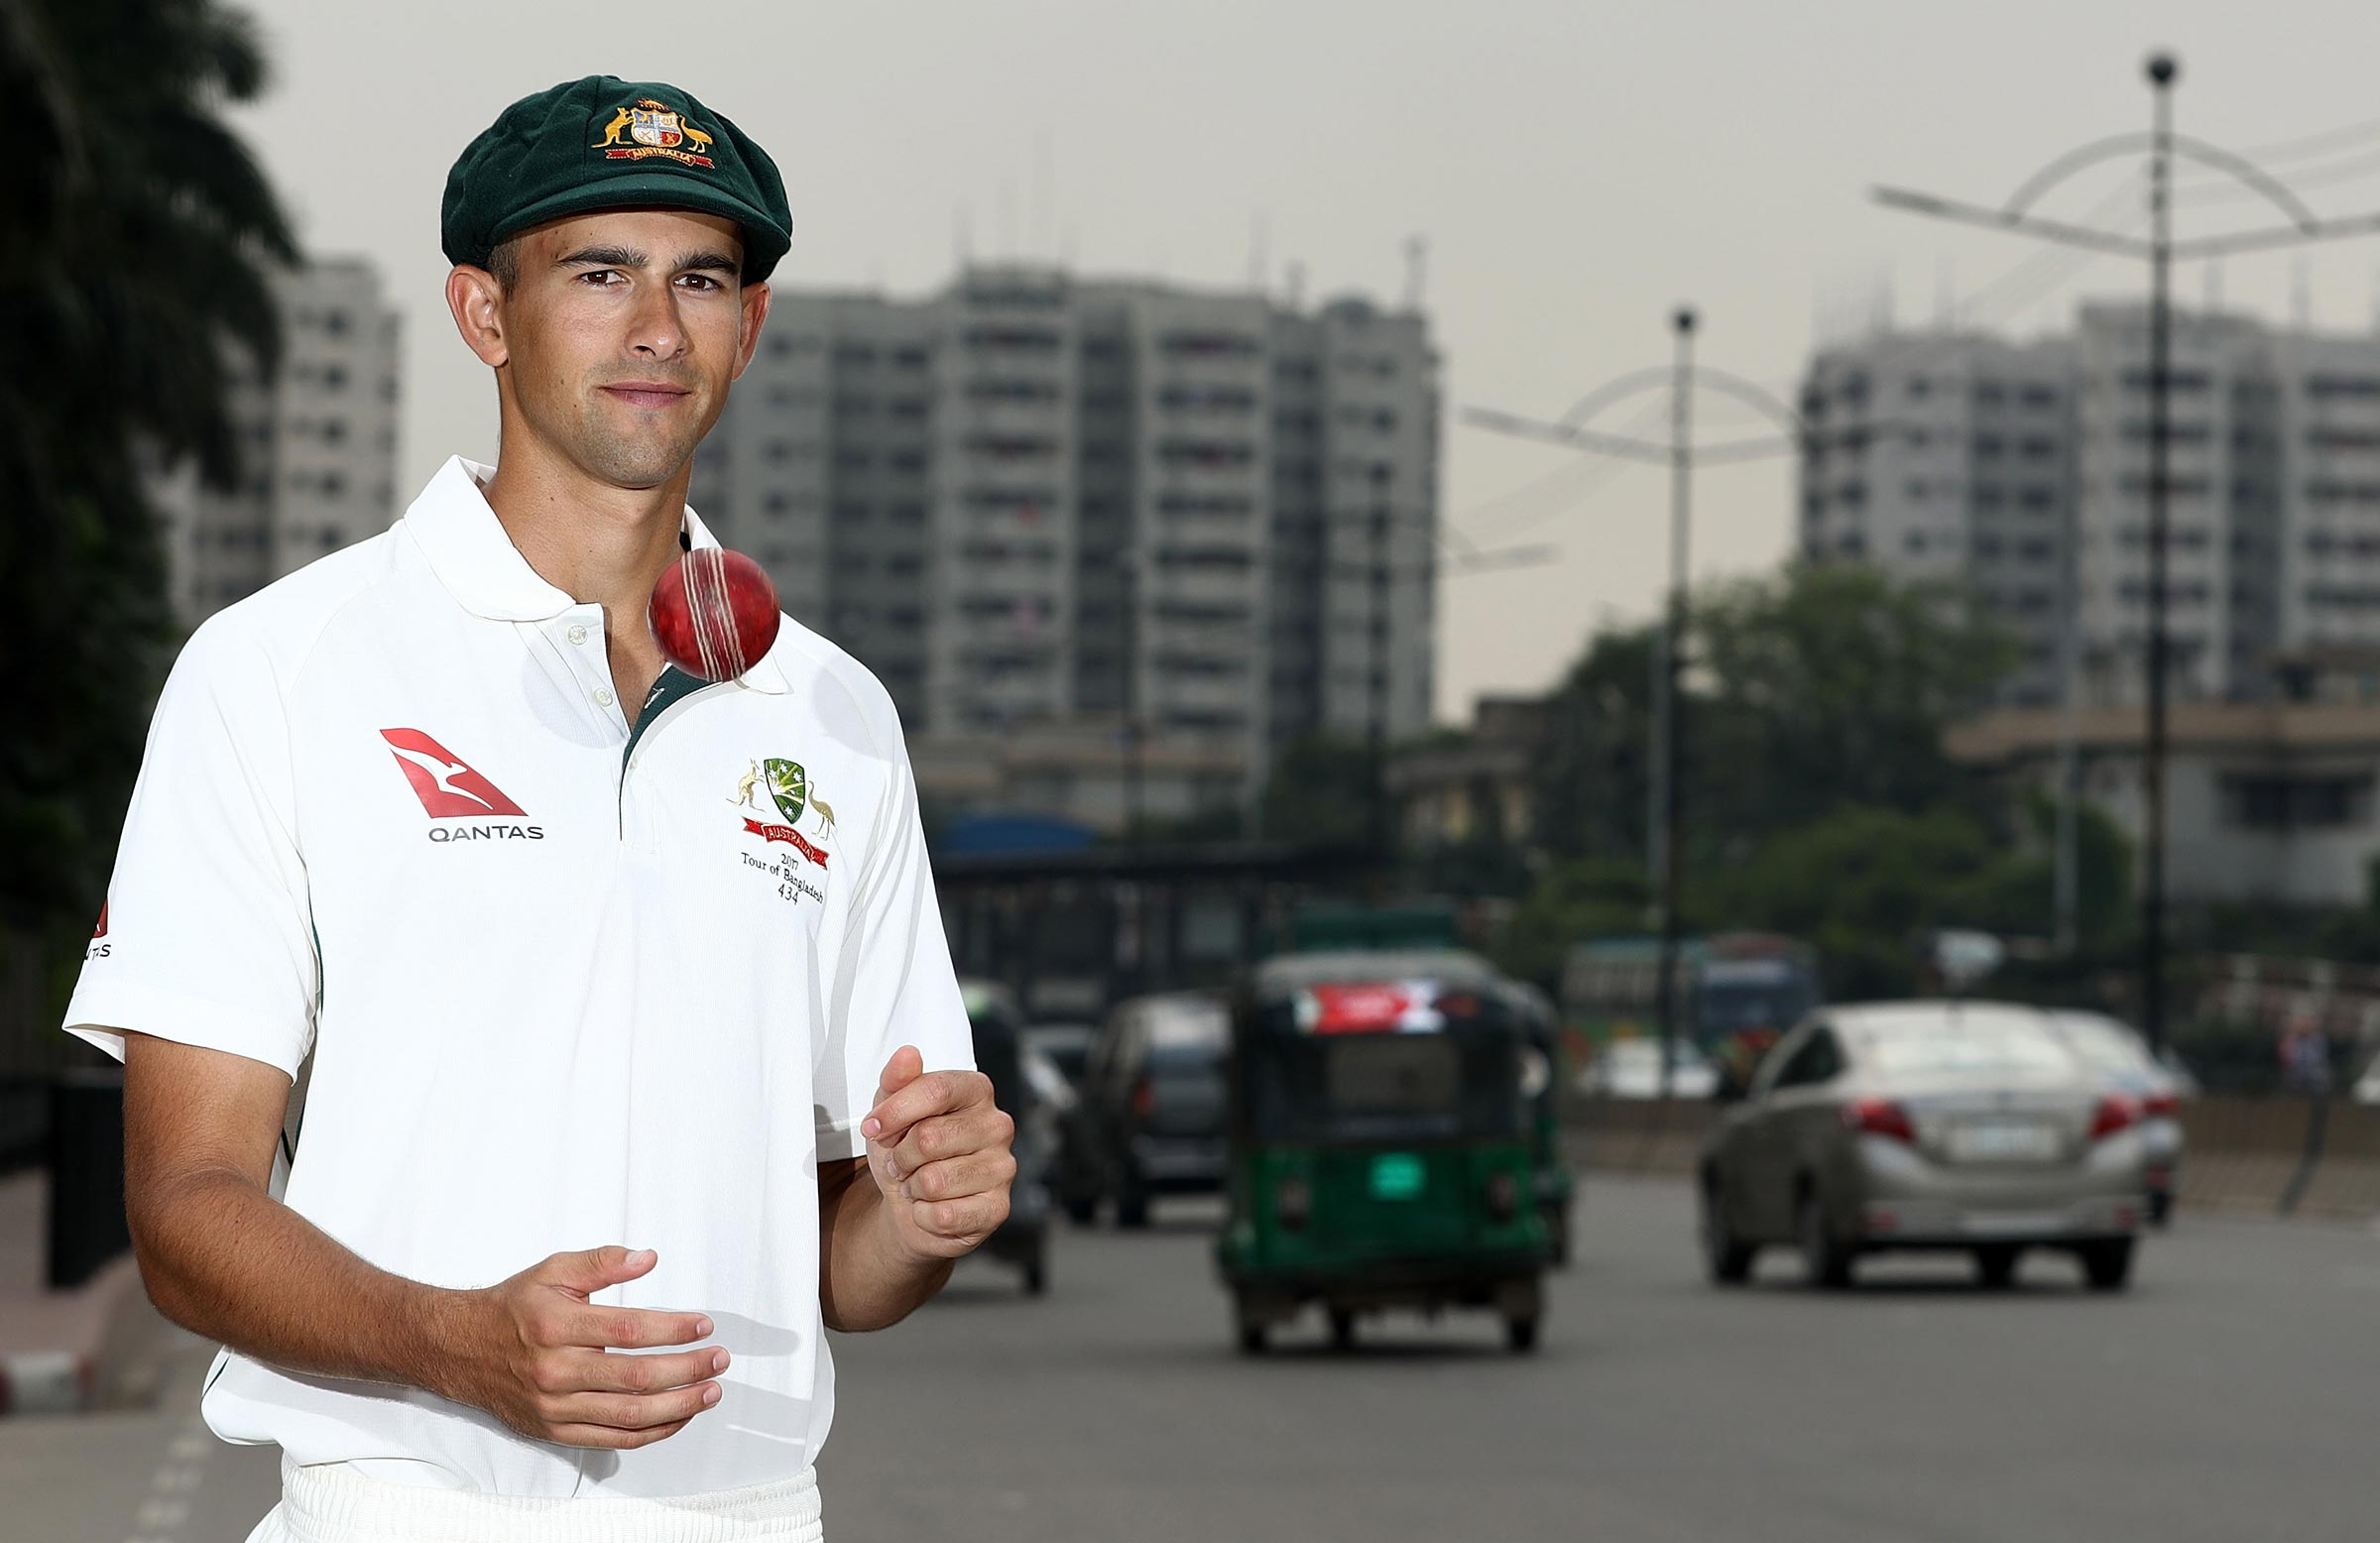 Bangladesh on top in 1st test, Australia struggling at 123